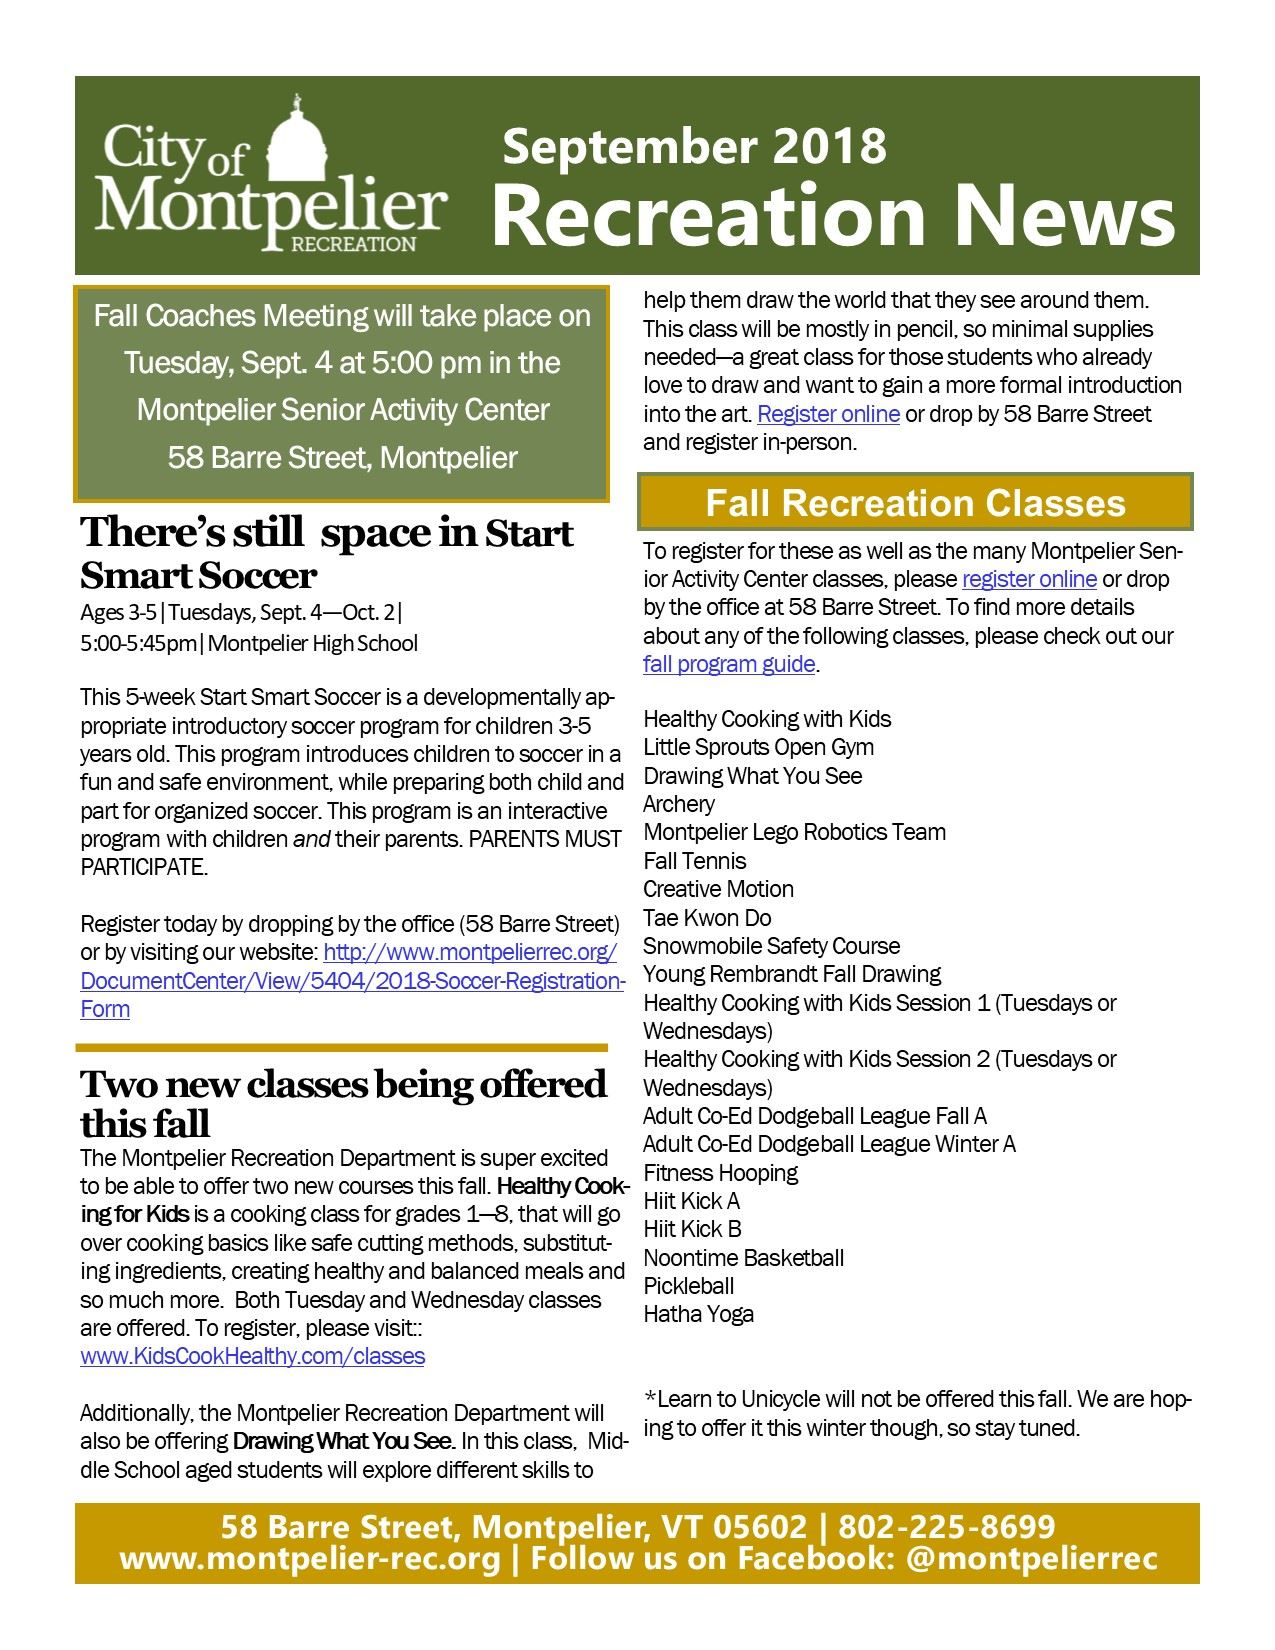 Sept. Rec Newsletter Snapshot